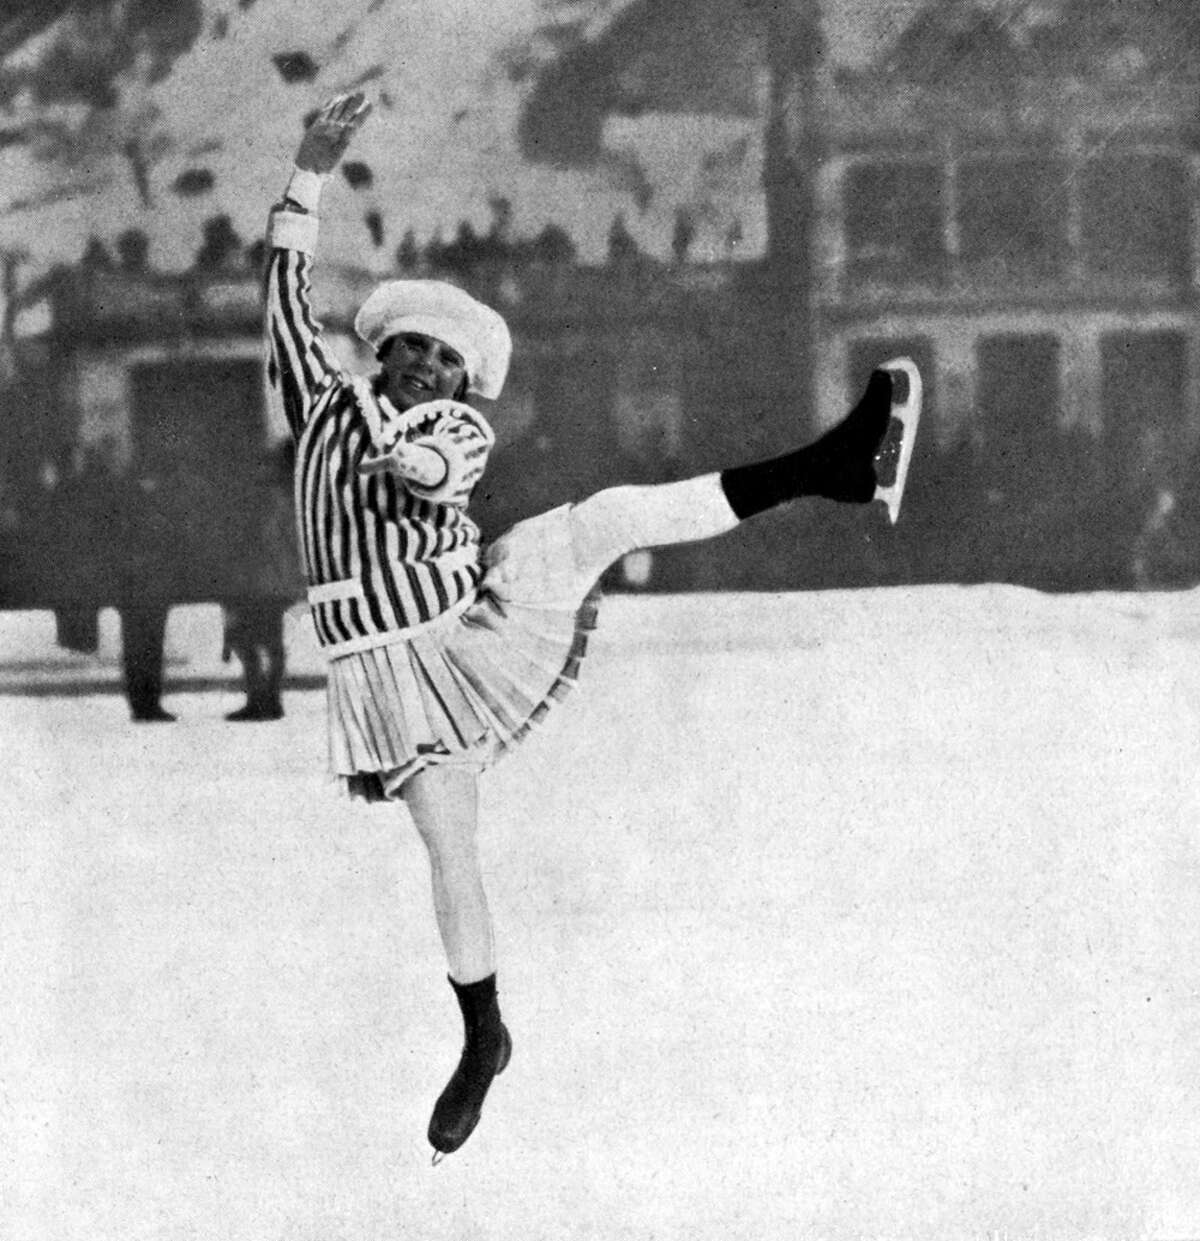 1924: Norway's Sonja Henie is pictured competing in her first Olympic Games at the age of 11. She later became the most famous figure skater of all time.